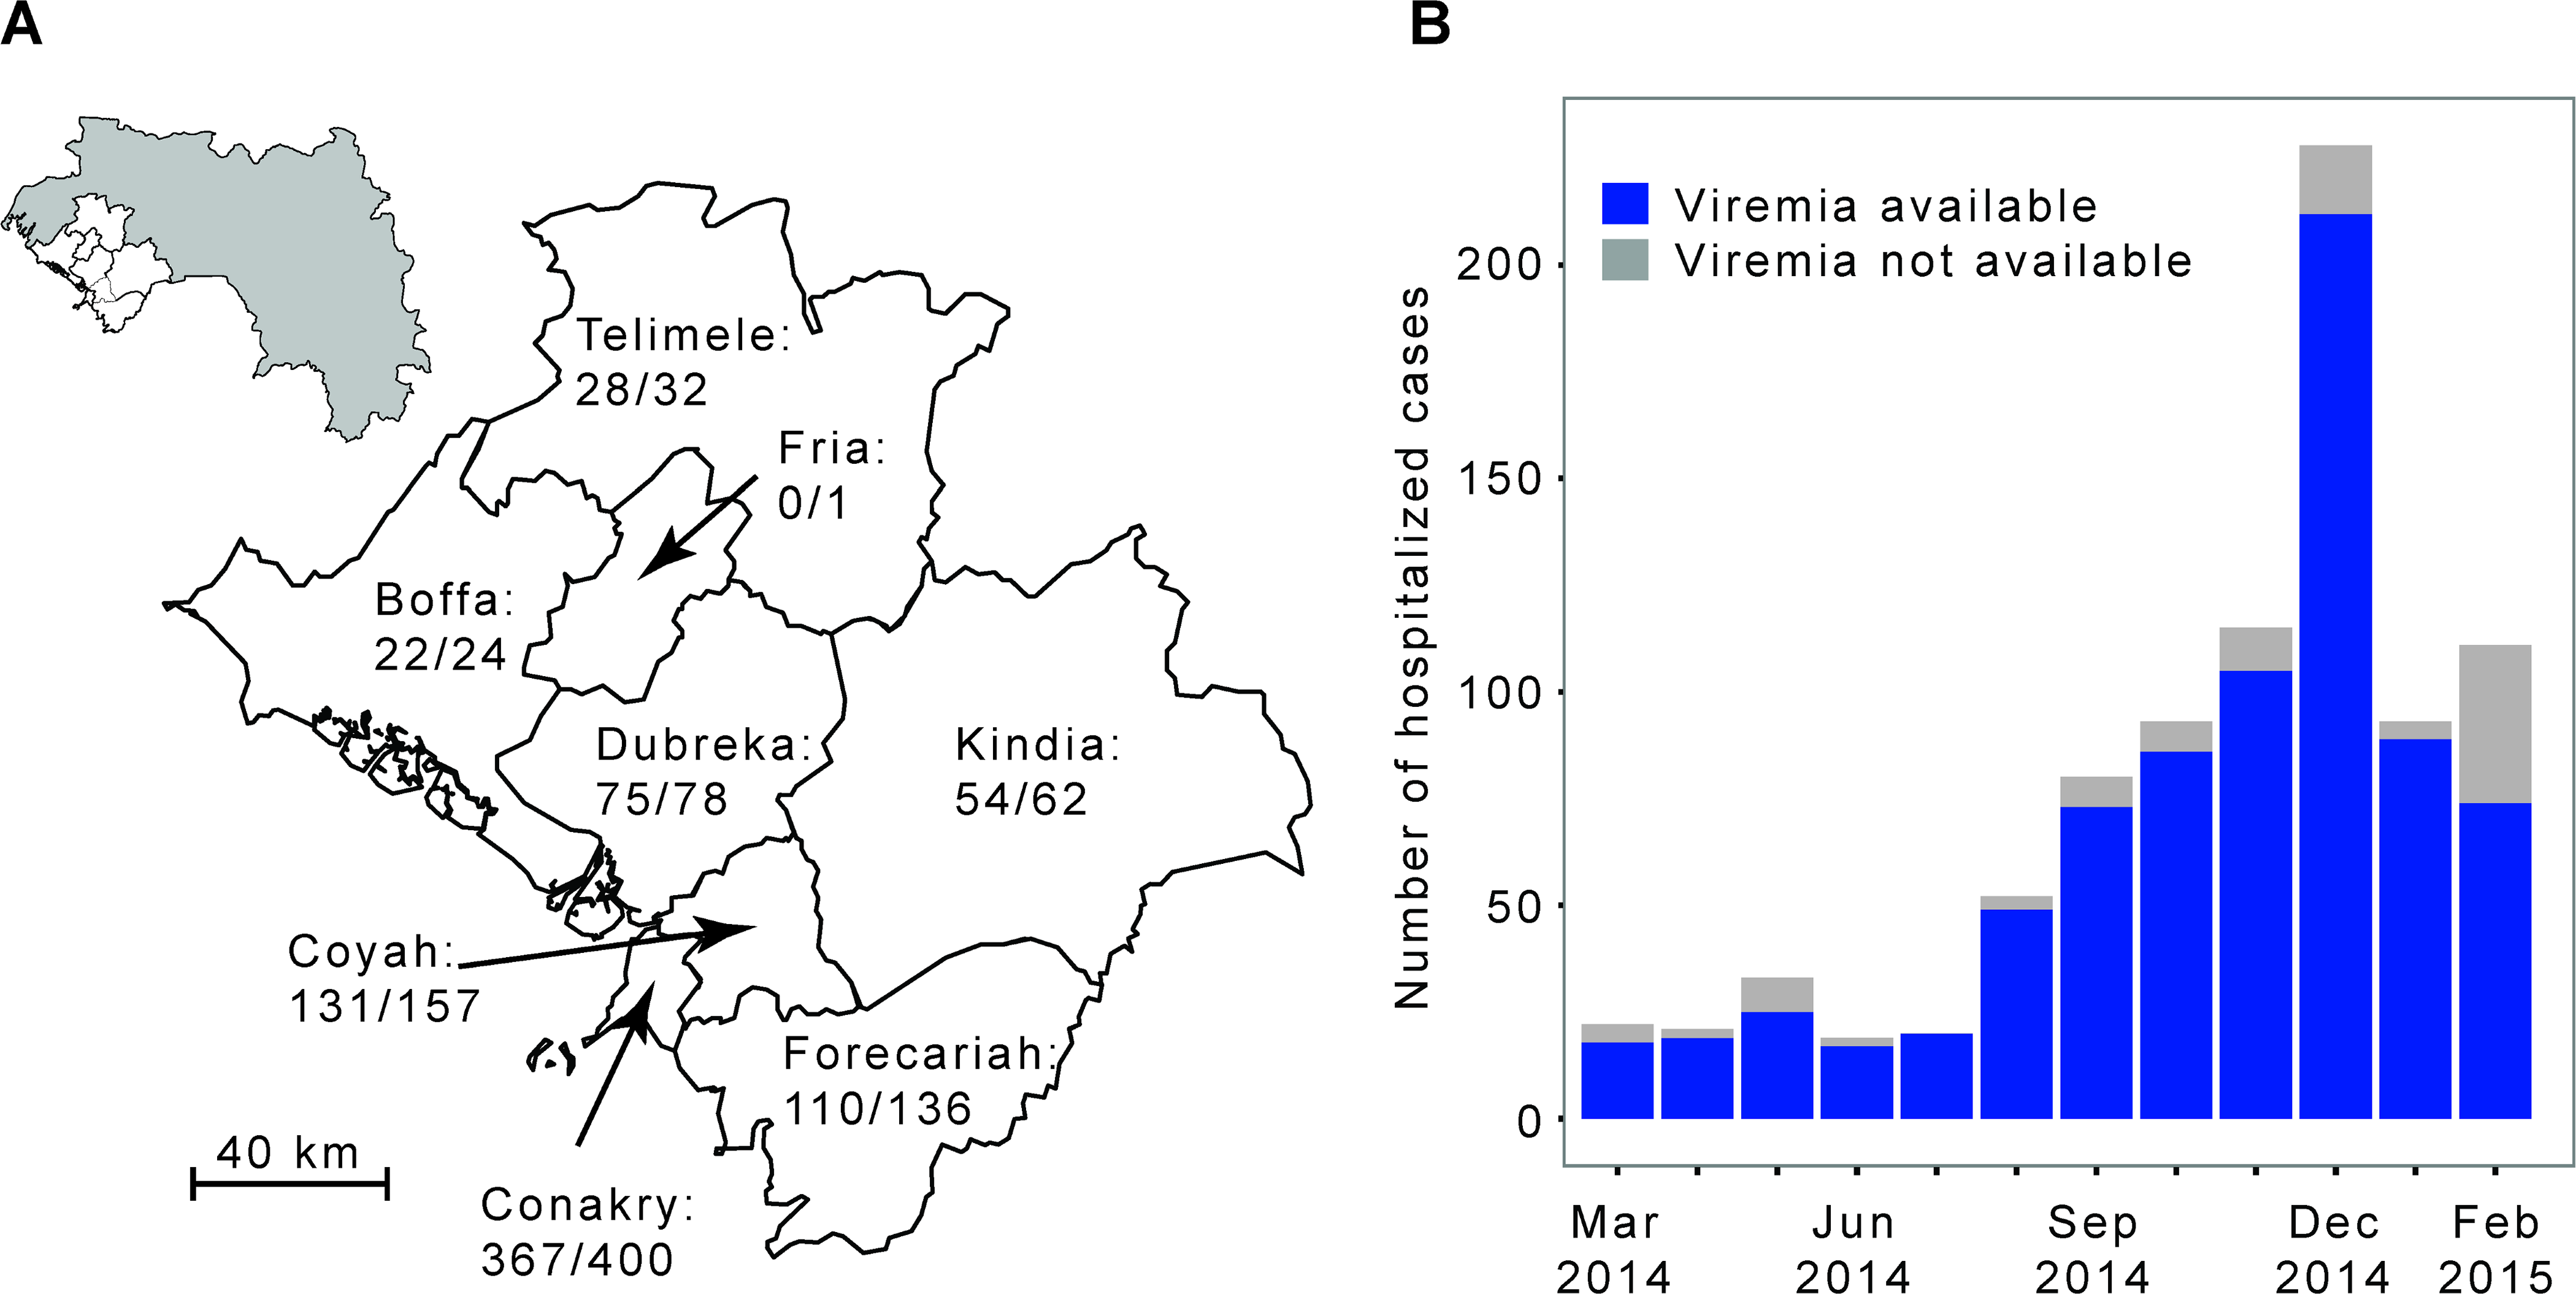 The Ebola virus disease epidemic in the Conakry area, Guinea, March 2014 to February 2015.